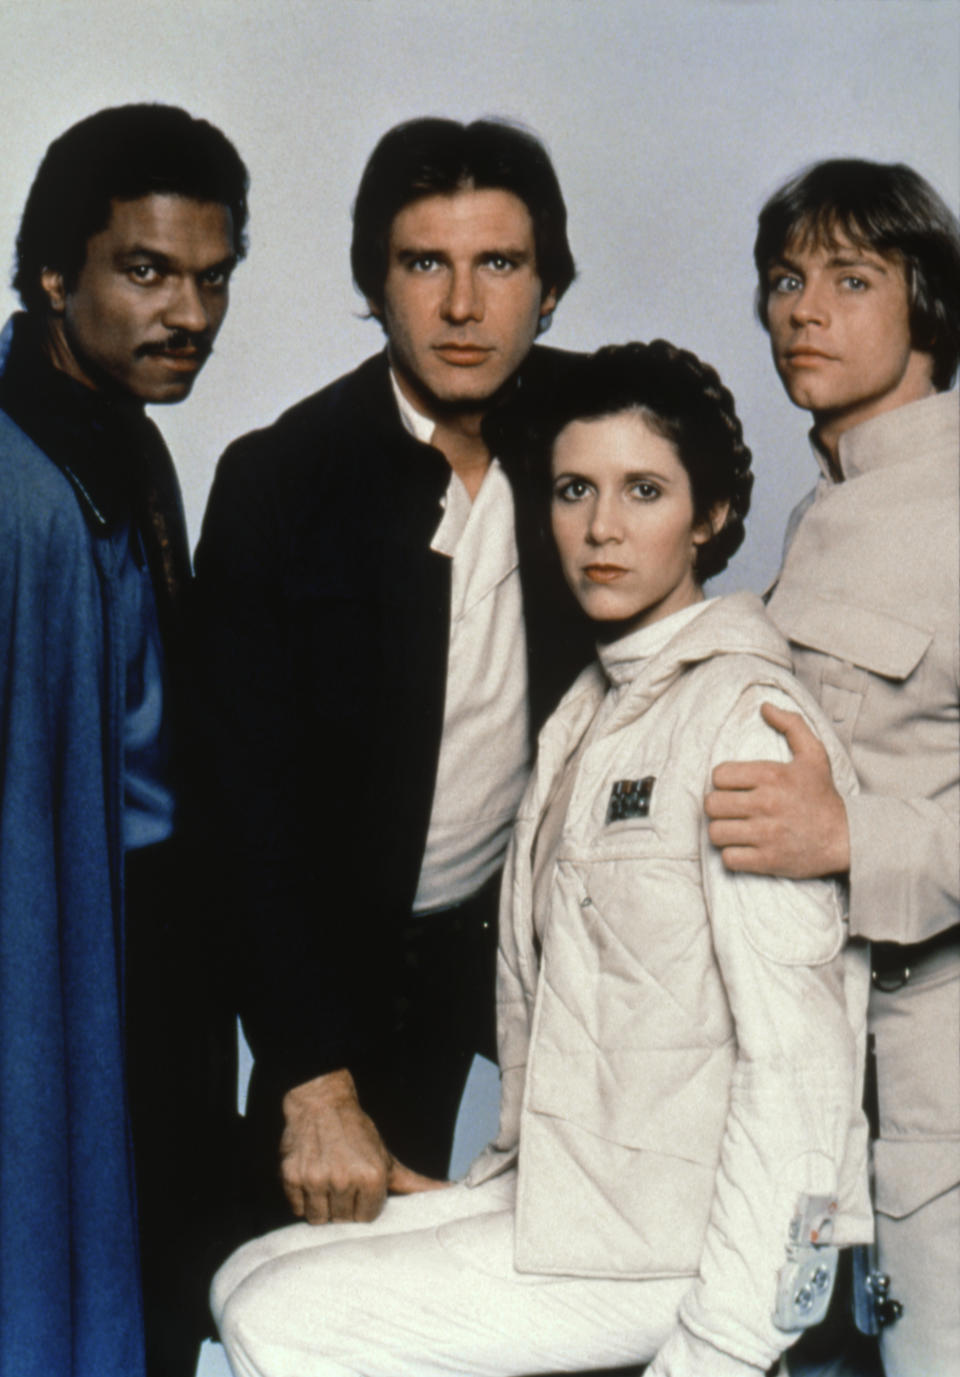 American actors Billy Dee Williams, Harrison Ford, Carrie Fisher and Mark Hamill on the set of Star Wars: Episode V - The Empire Strikes Back directed by Irvin Kershner. (Photo by Lucasfilm/Sunset Boulevard/Corbis via Getty Images)